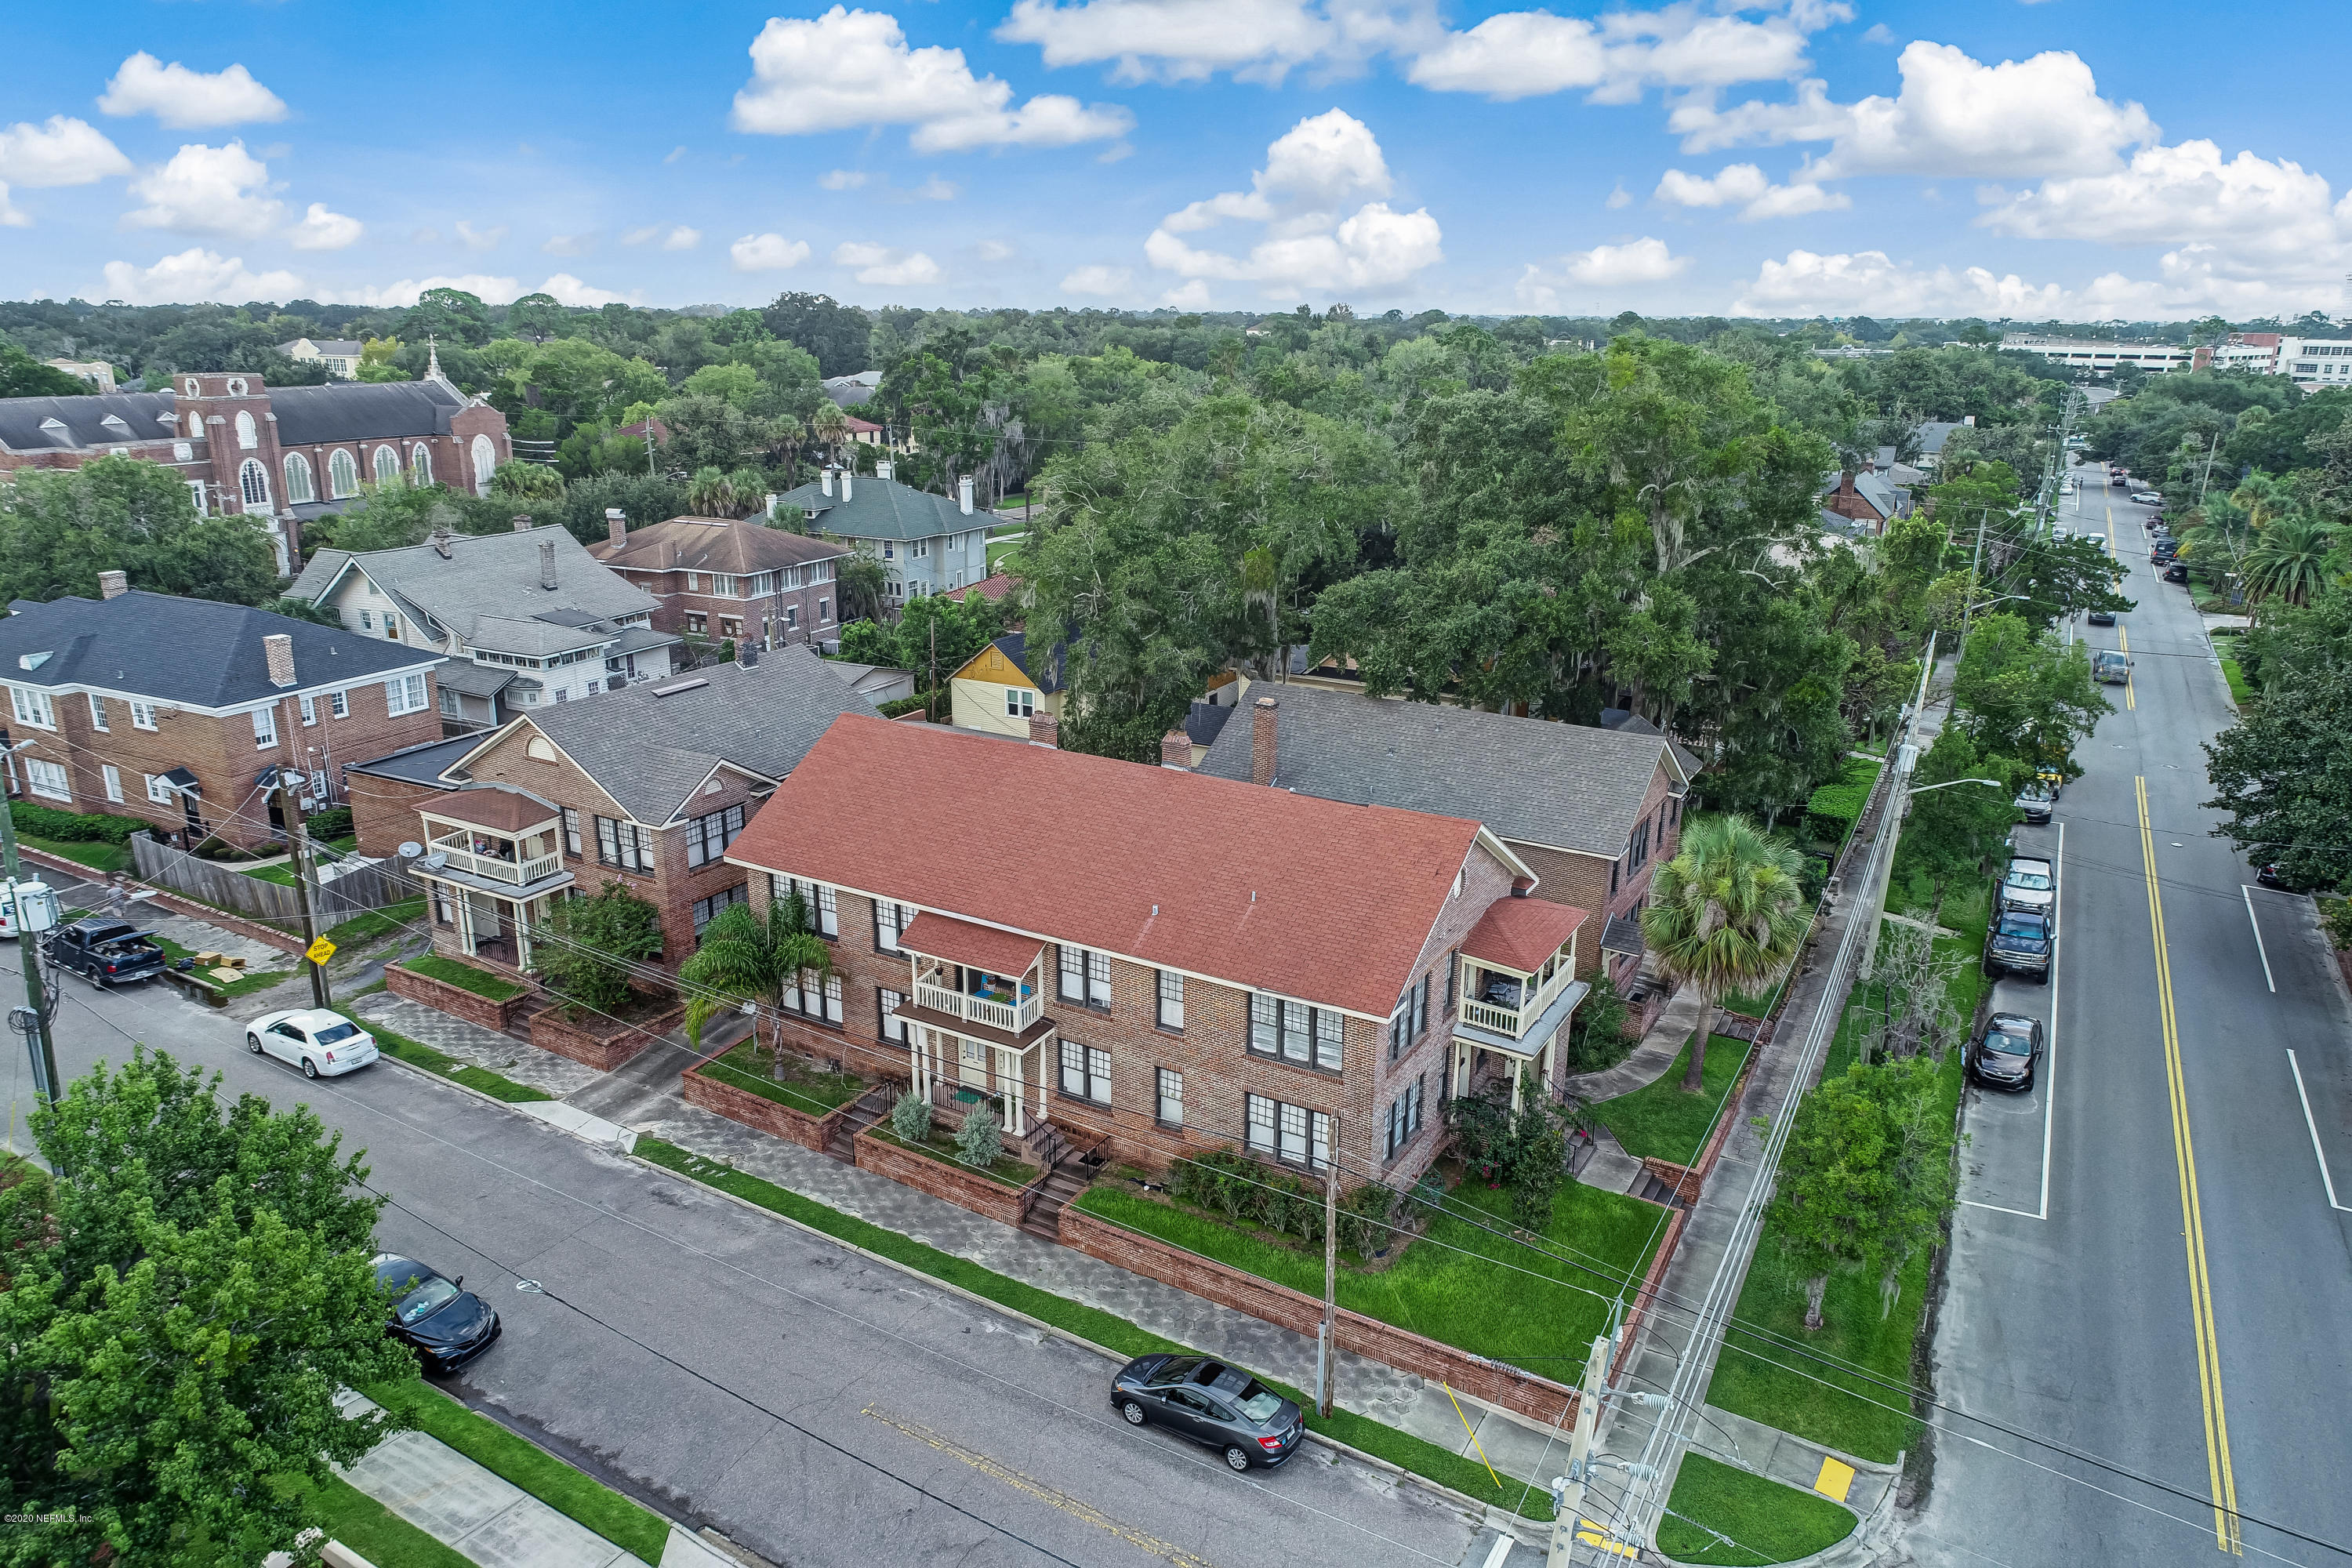 1715 MALLORY, JACKSONVILLE, FLORIDA 32205, 16 Bedrooms Bedrooms, ,9 BathroomsBathrooms,Investment / MultiFamily,For sale,MALLORY,1071911